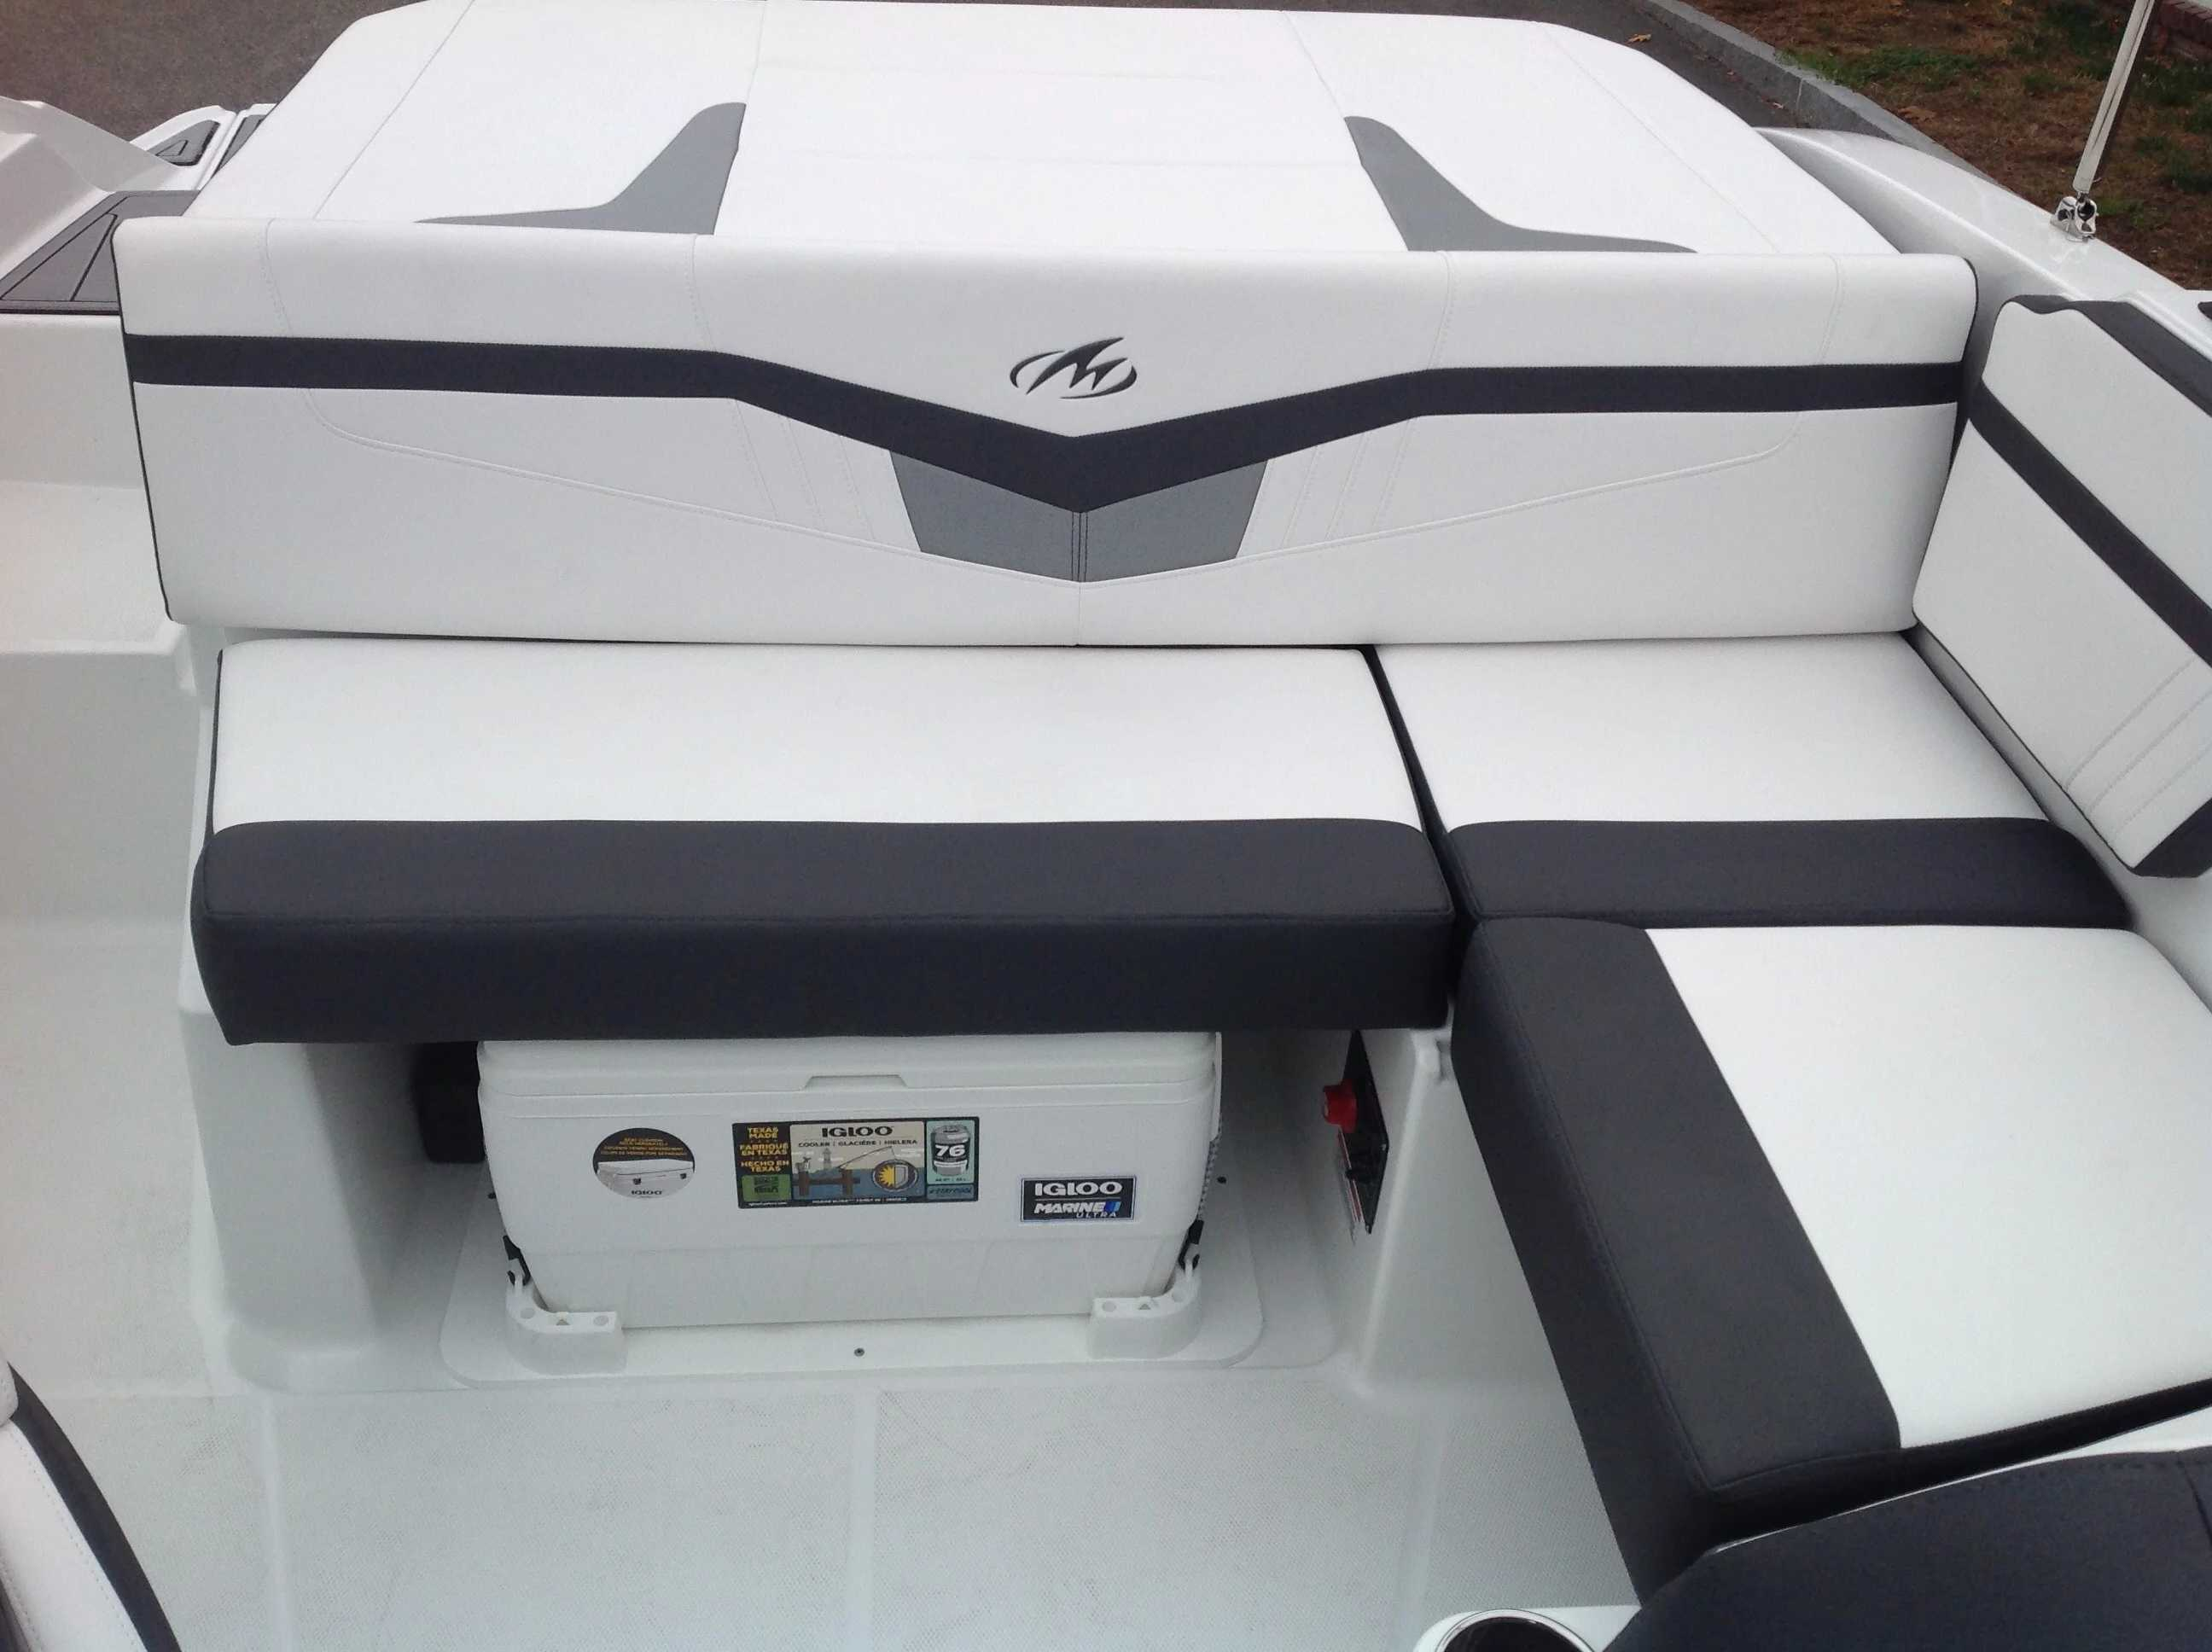 2021 Monterey boat for sale, model of the boat is M20 & Image # 10 of 13